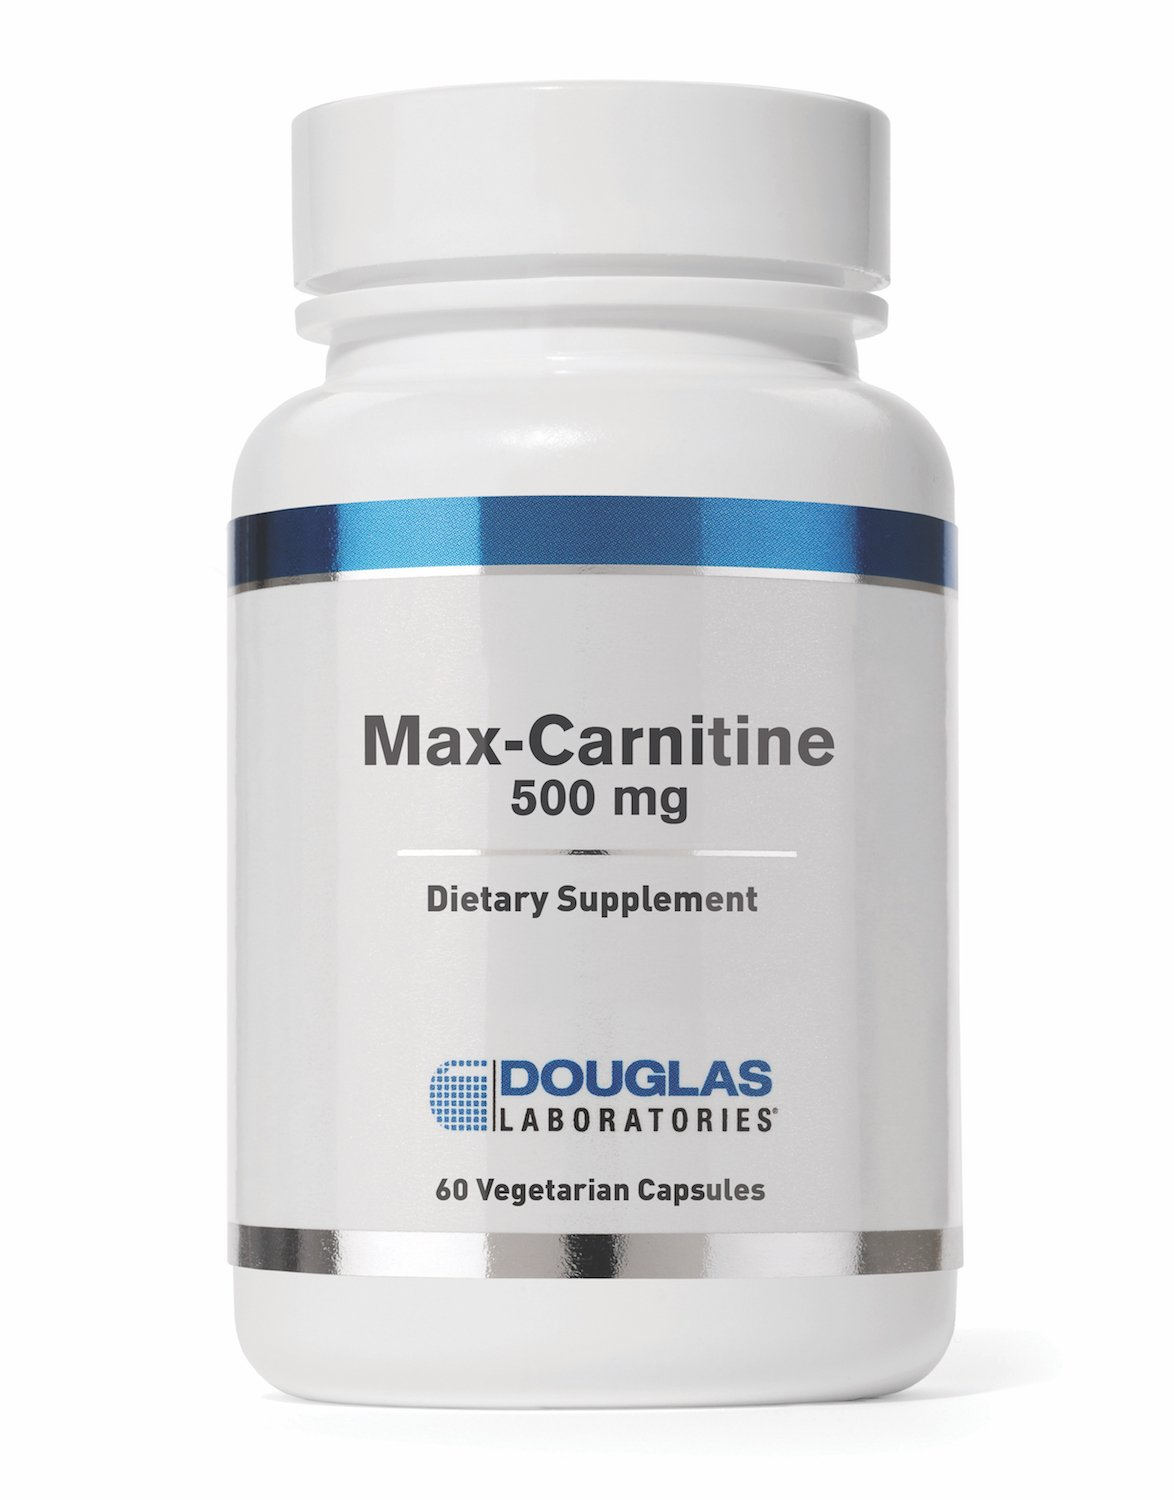 Douglas Laboratories - Max-Carnitine - Supports Heart Muscle Function and Skeletal Muscle Performance* - 60 Capsules by Douglas Laboratories (Image #1)